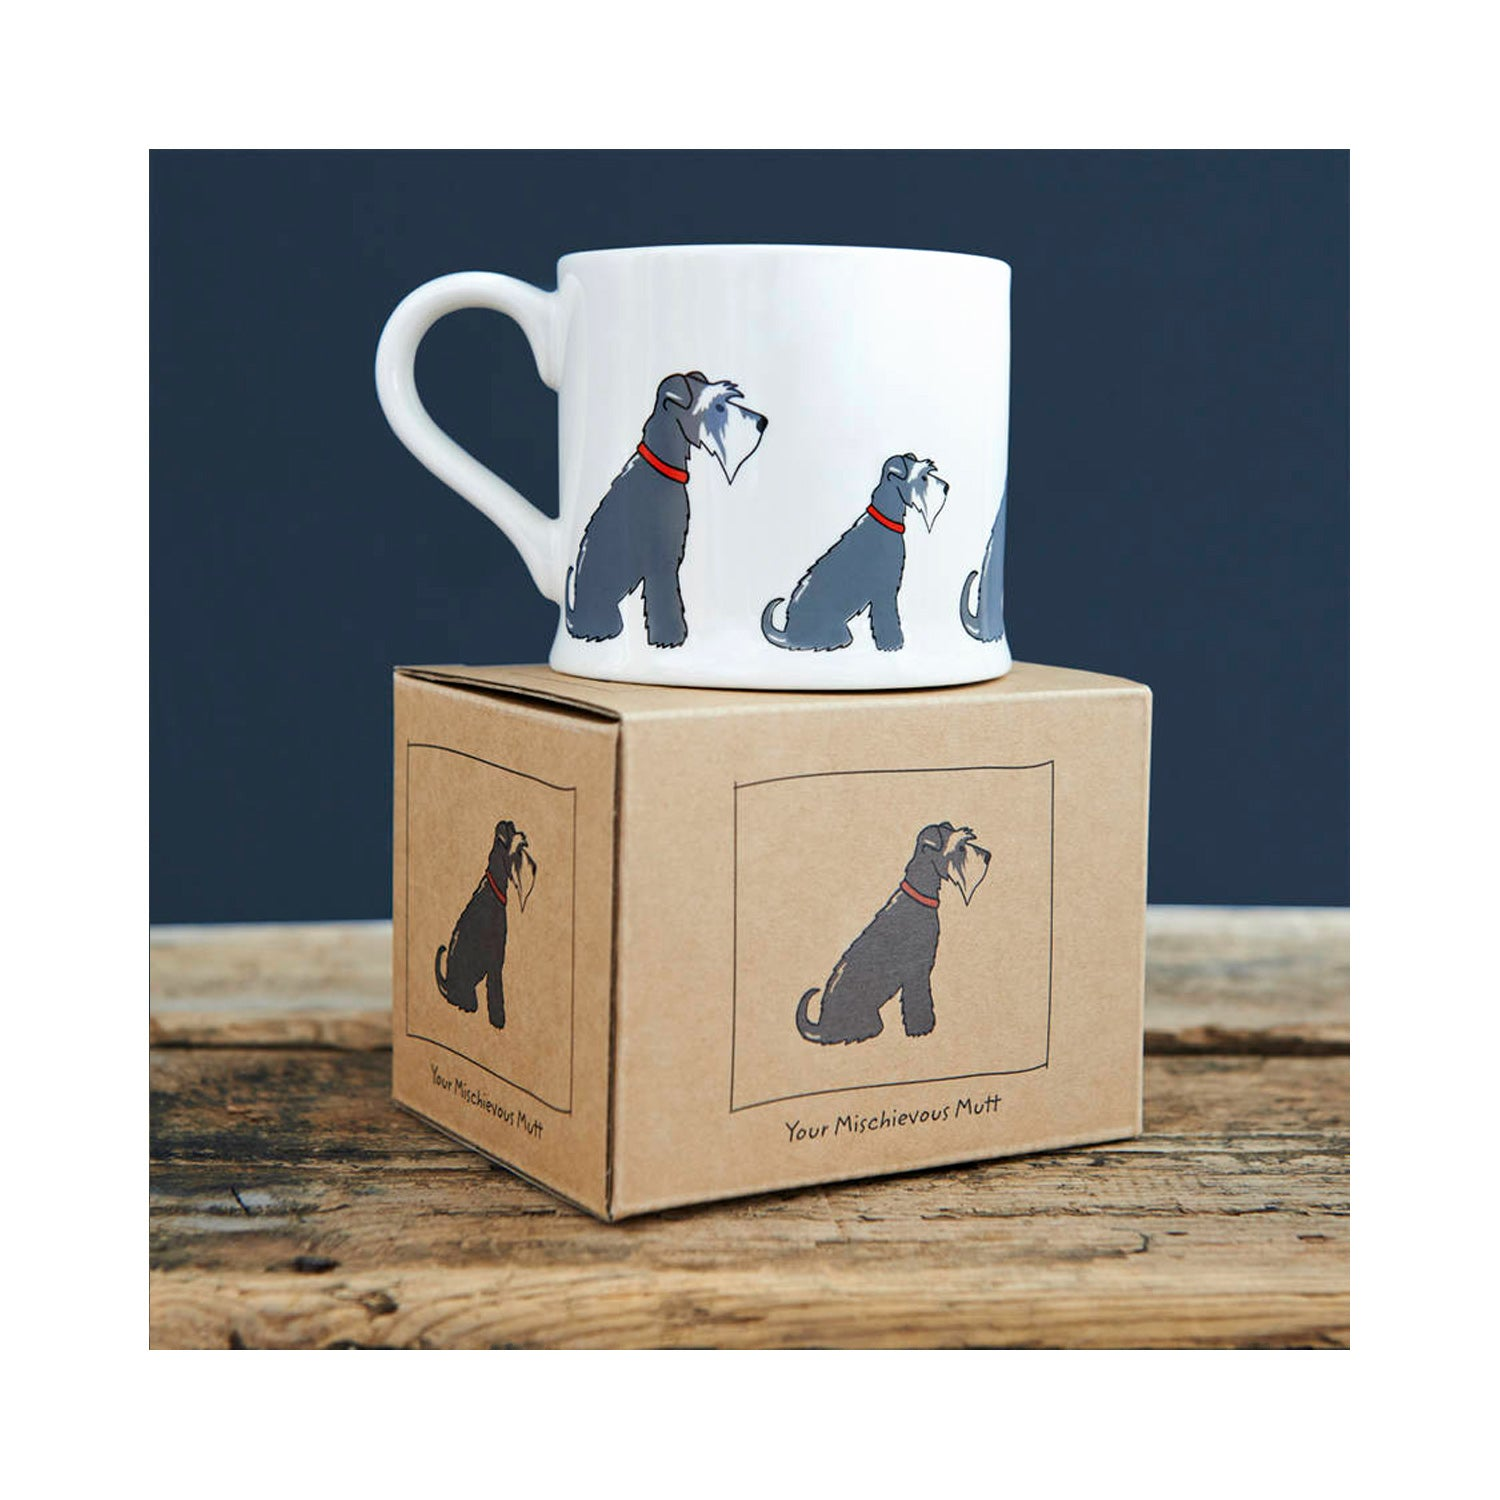 Dog Lover Gifts available at Dog Krazy Gifts - Eddie The Grey & White Schnauzer Mug - part of the Sweet William range available from Dog Krazy Gifts